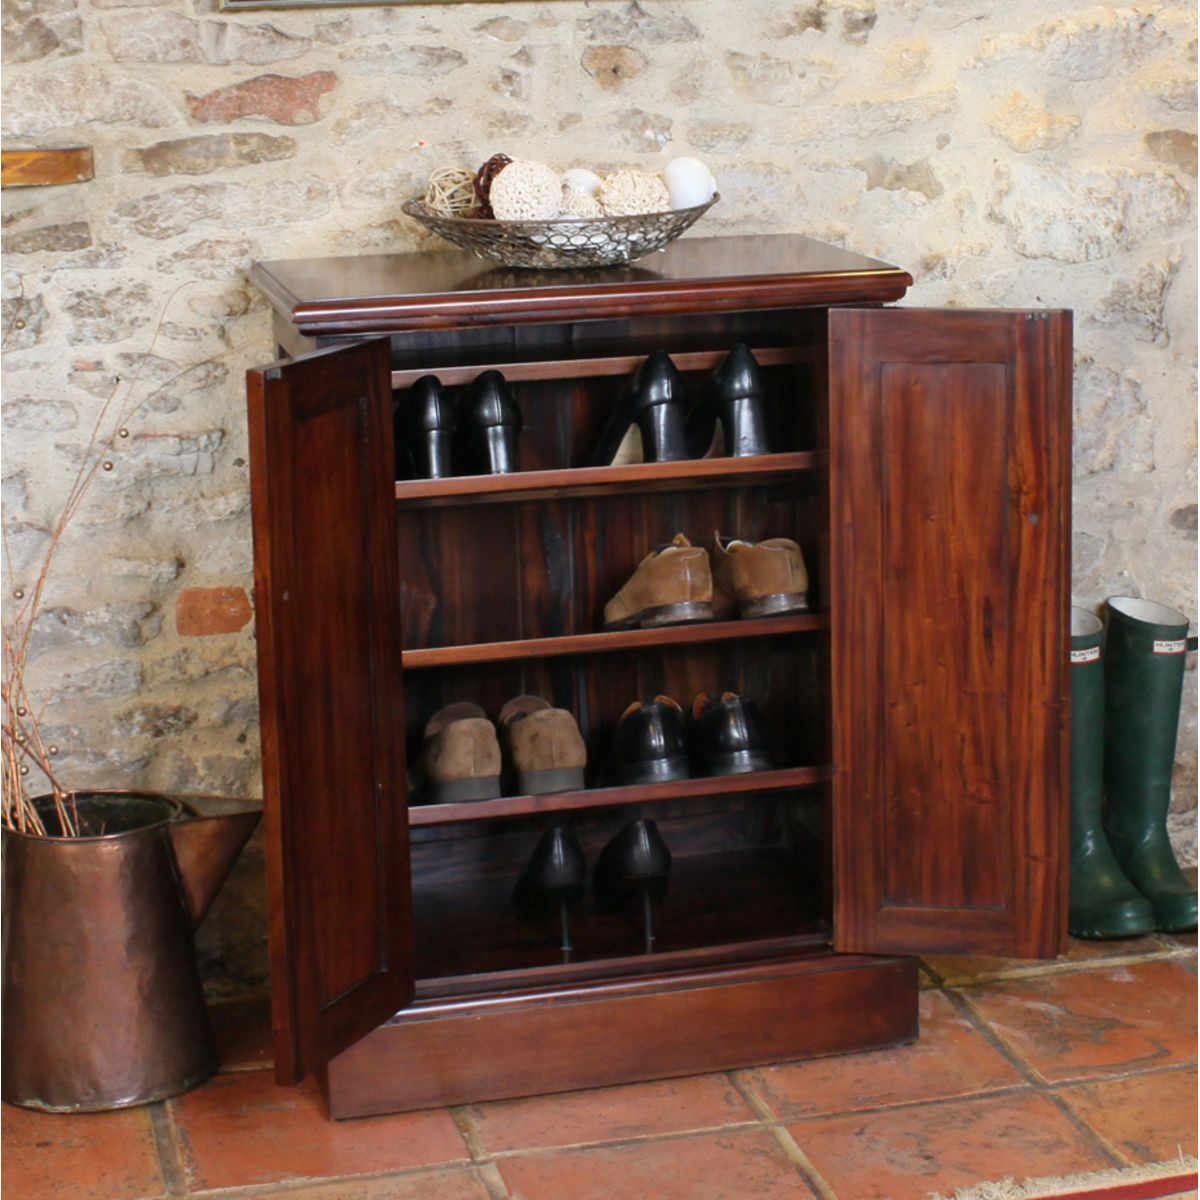 Mahogany Shoe Cupboard La Roque Wooden Furniture Store